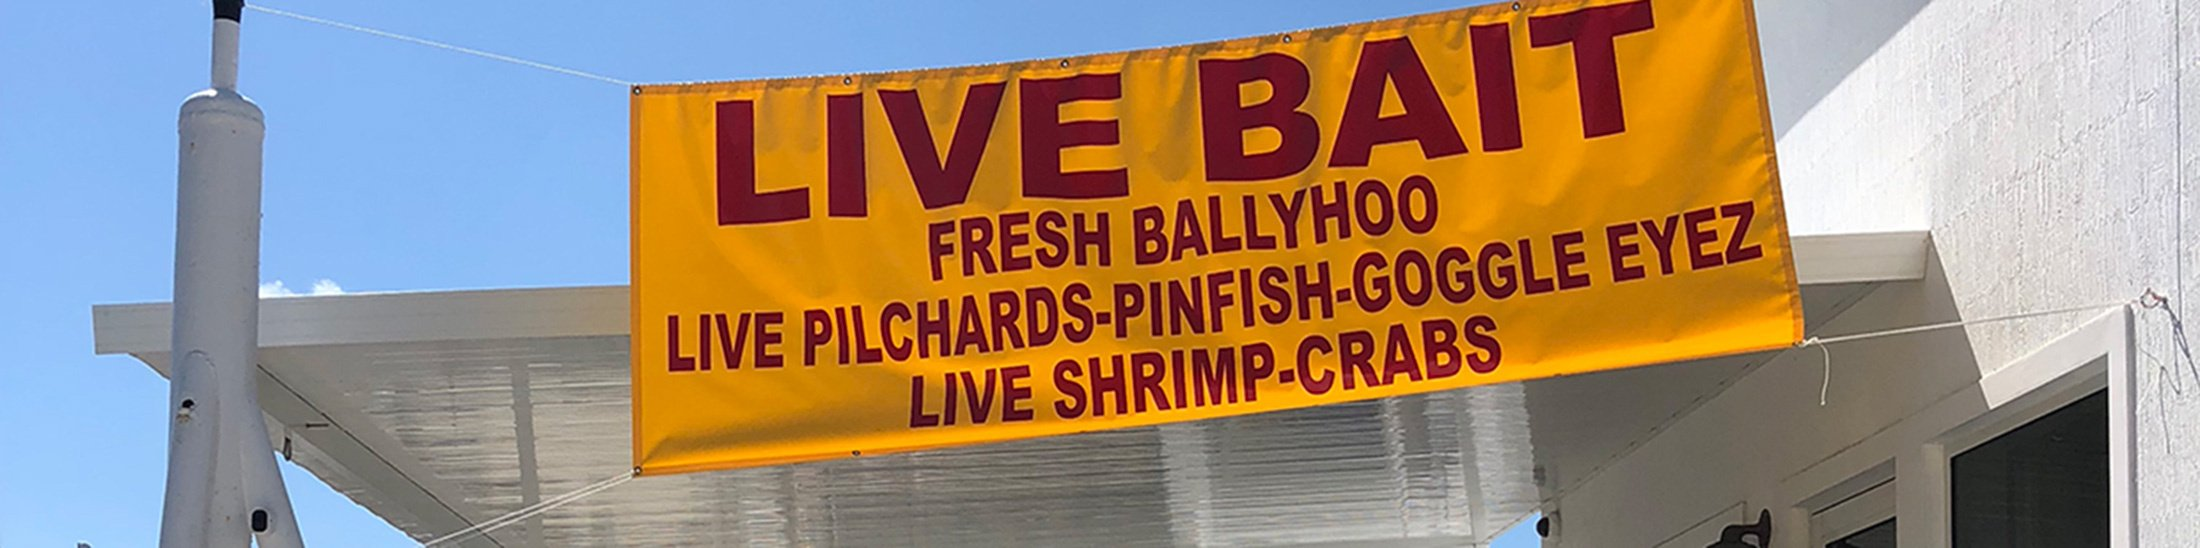 Live Bait for Sale